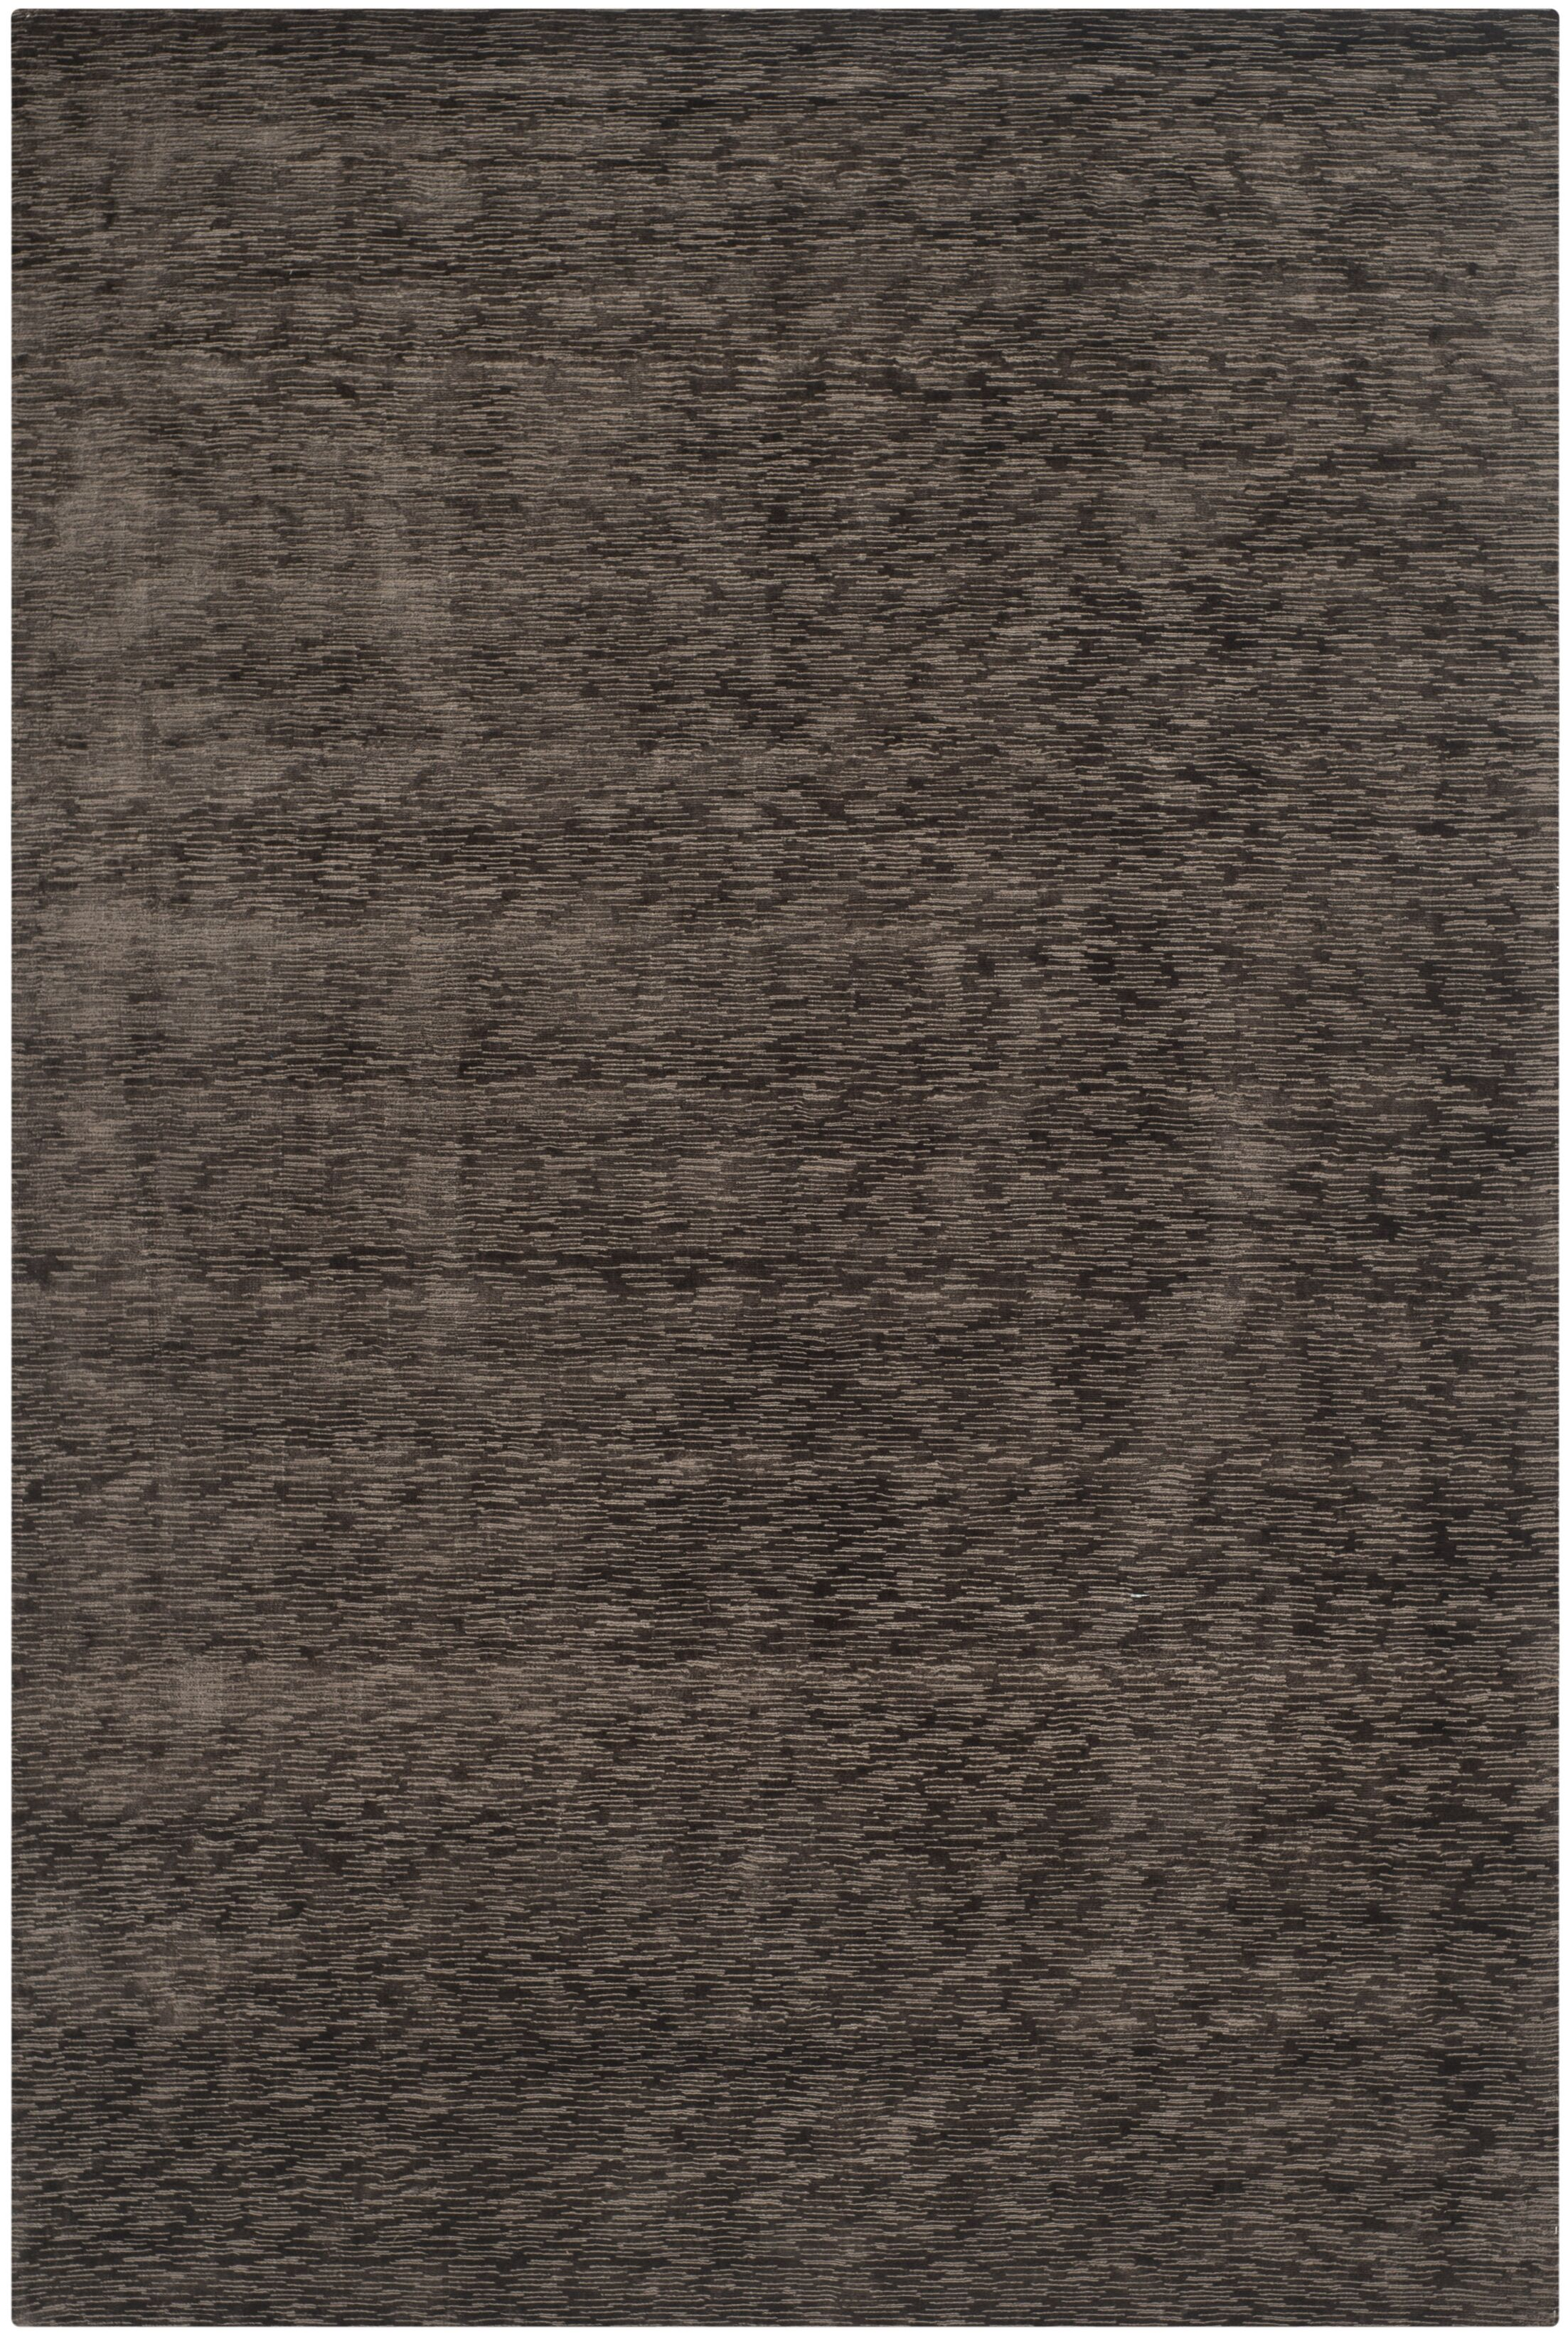 Maxim Charcoal Soild Rug Rug Size: Rectangle 9' x 12'